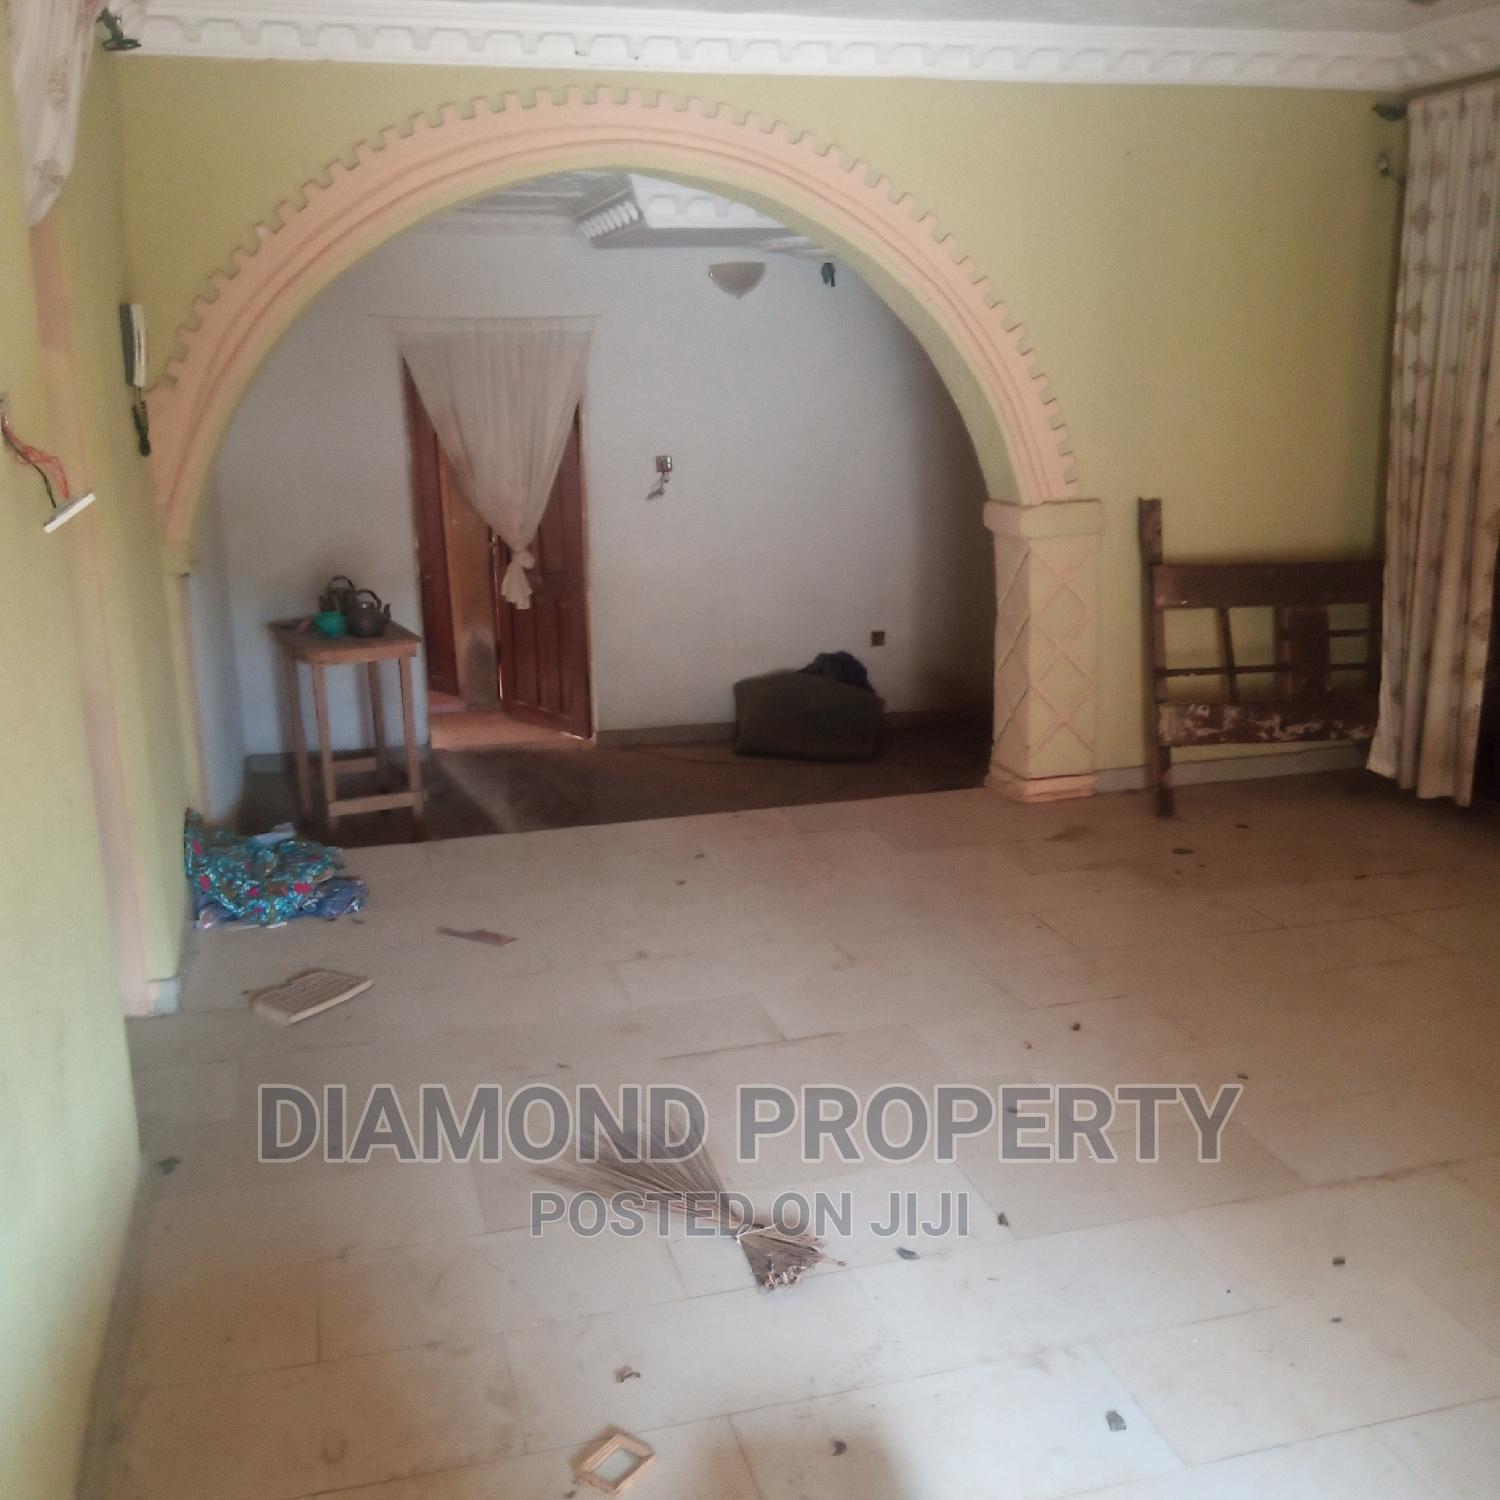 Furnished 1bdrm House in Diamond Property, Ibadan for Rent   Houses & Apartments For Rent for sale in Ibadan, Oyo State, Nigeria